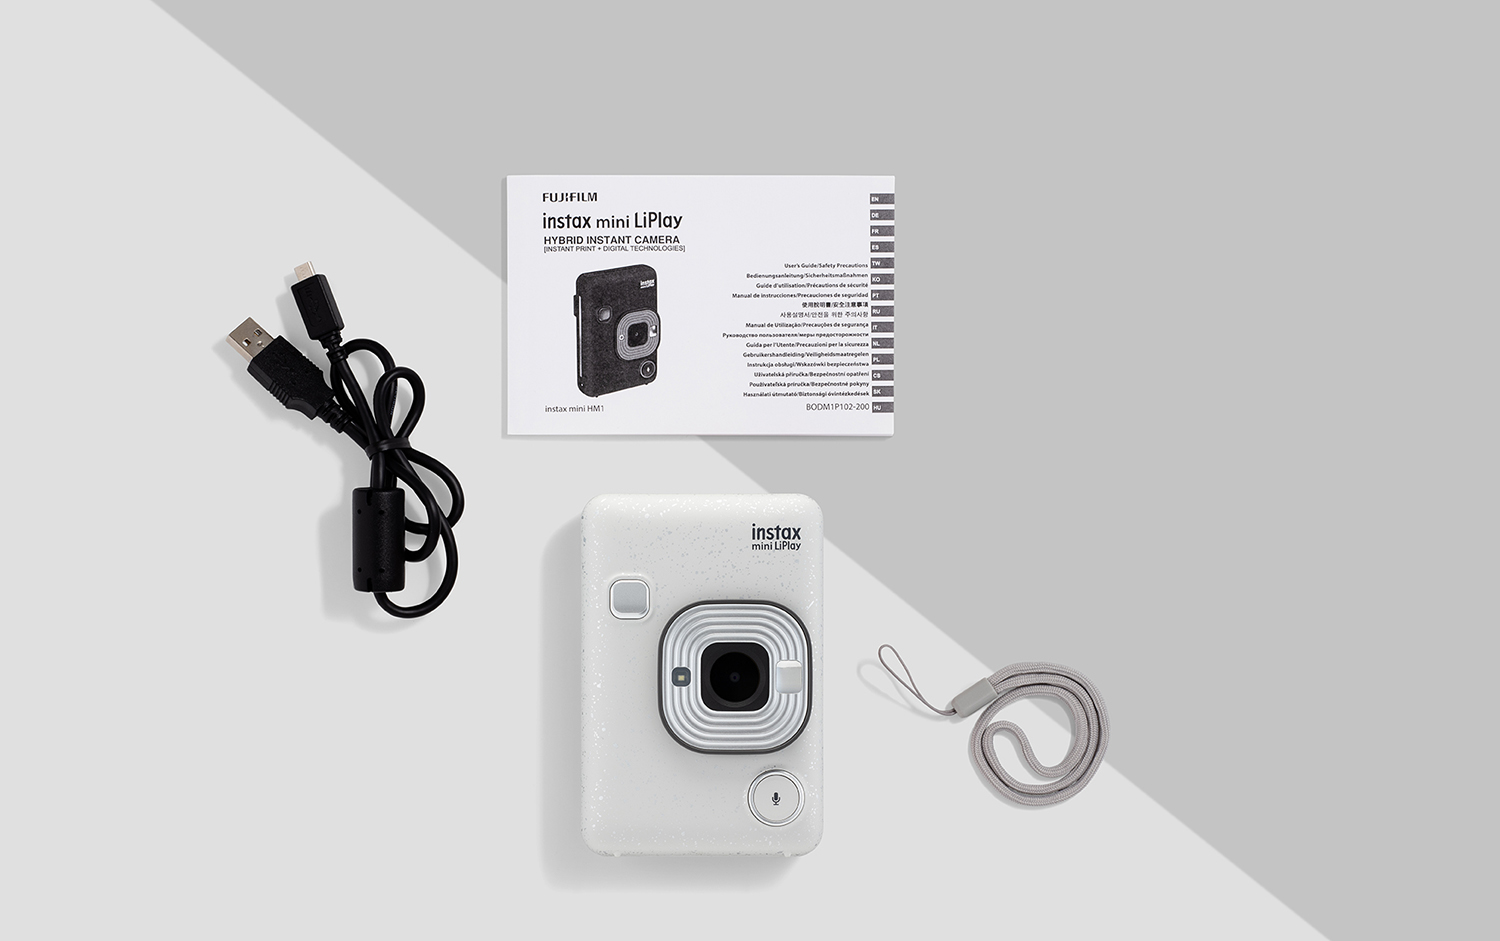 Fujifilm-instax-mini-liplay-white-image-5